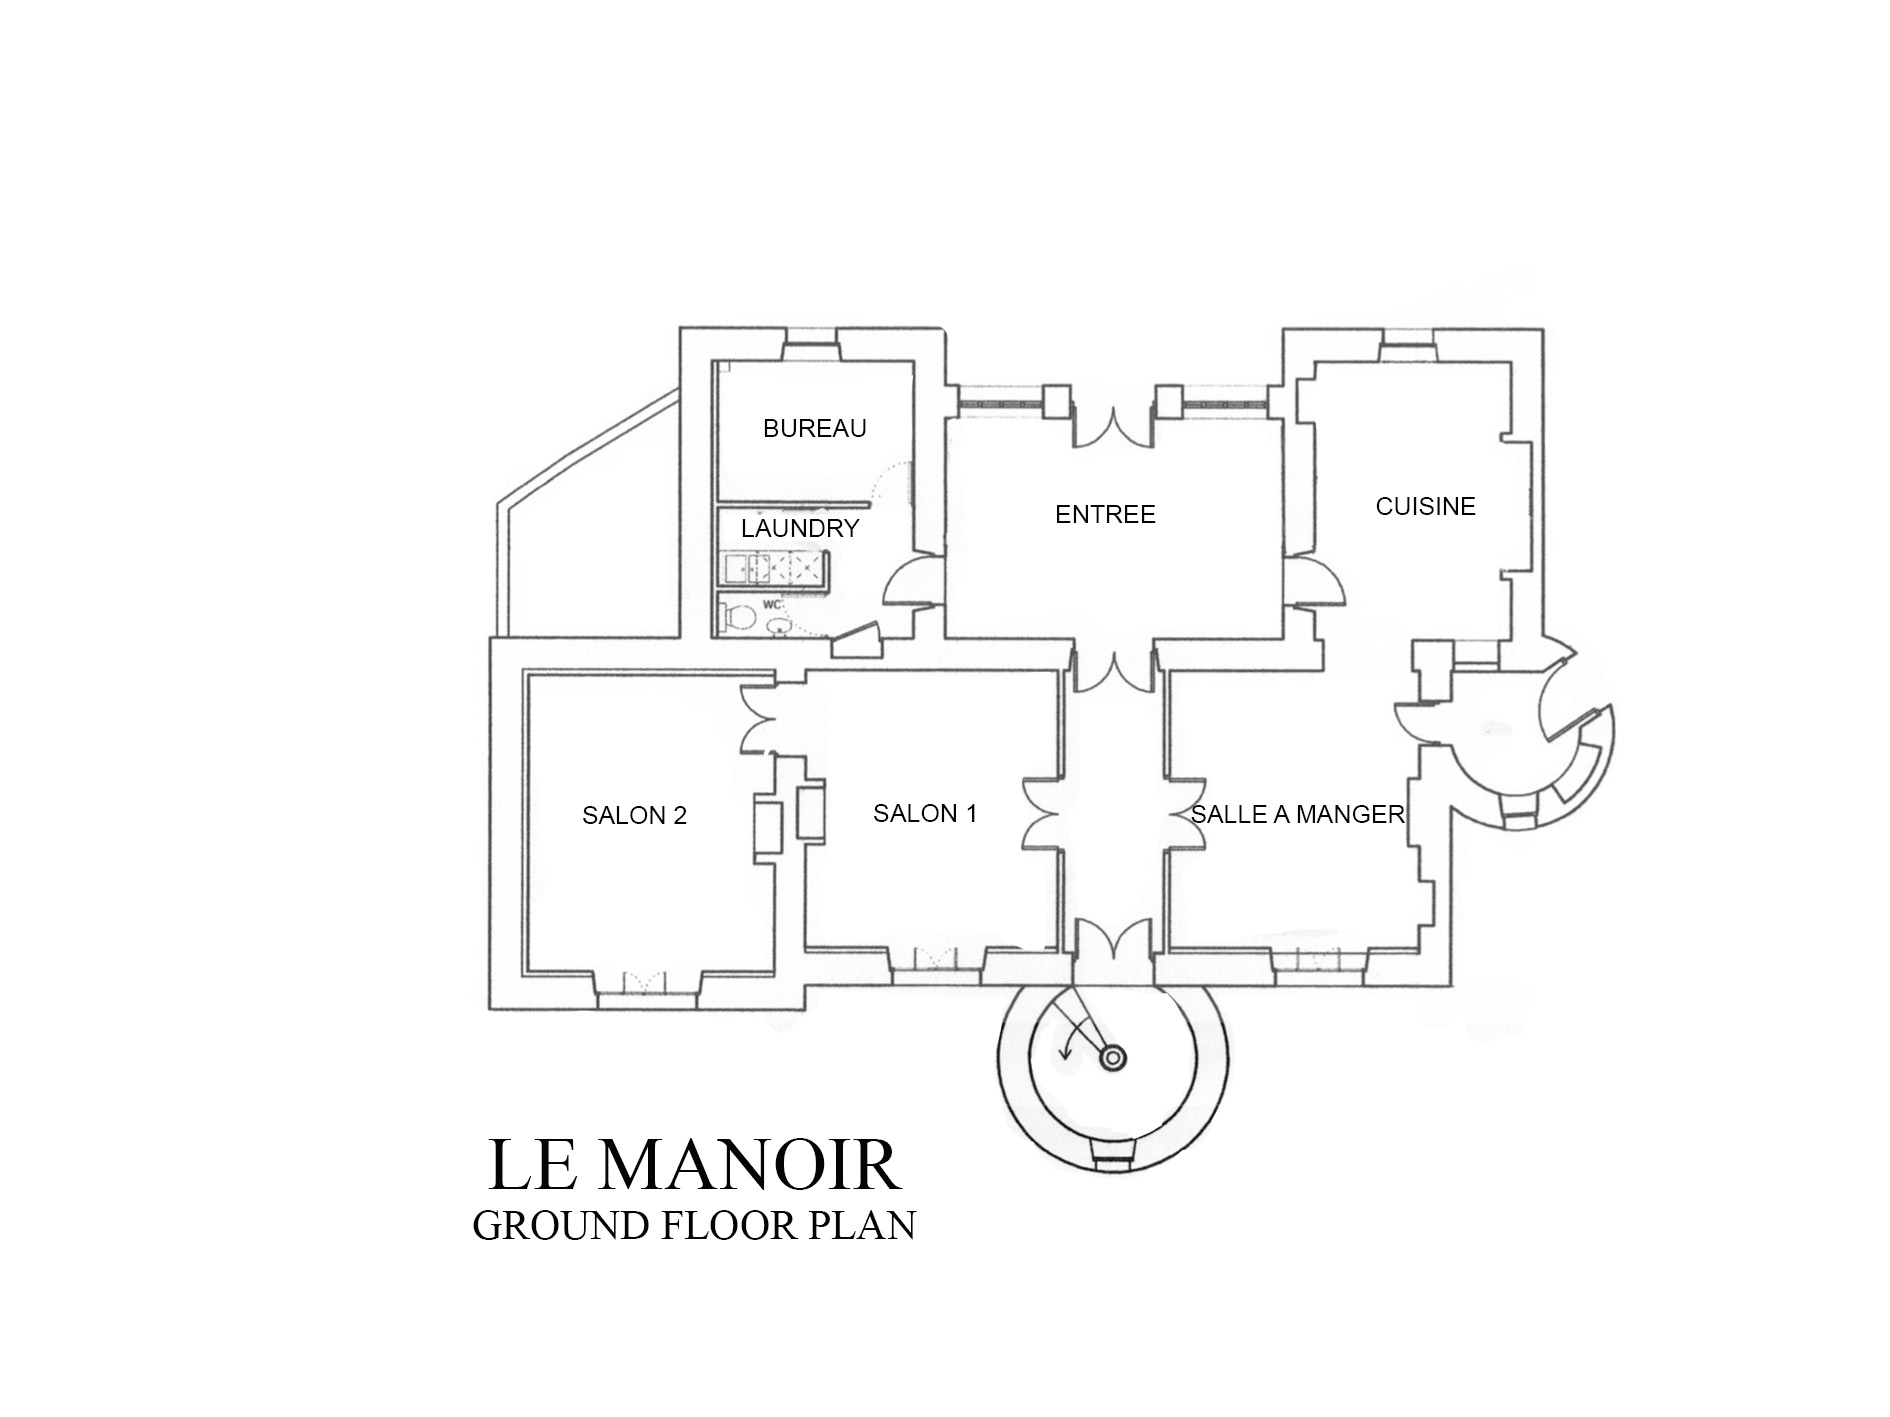 LE MANOIR GROUND FLOOR PLAN